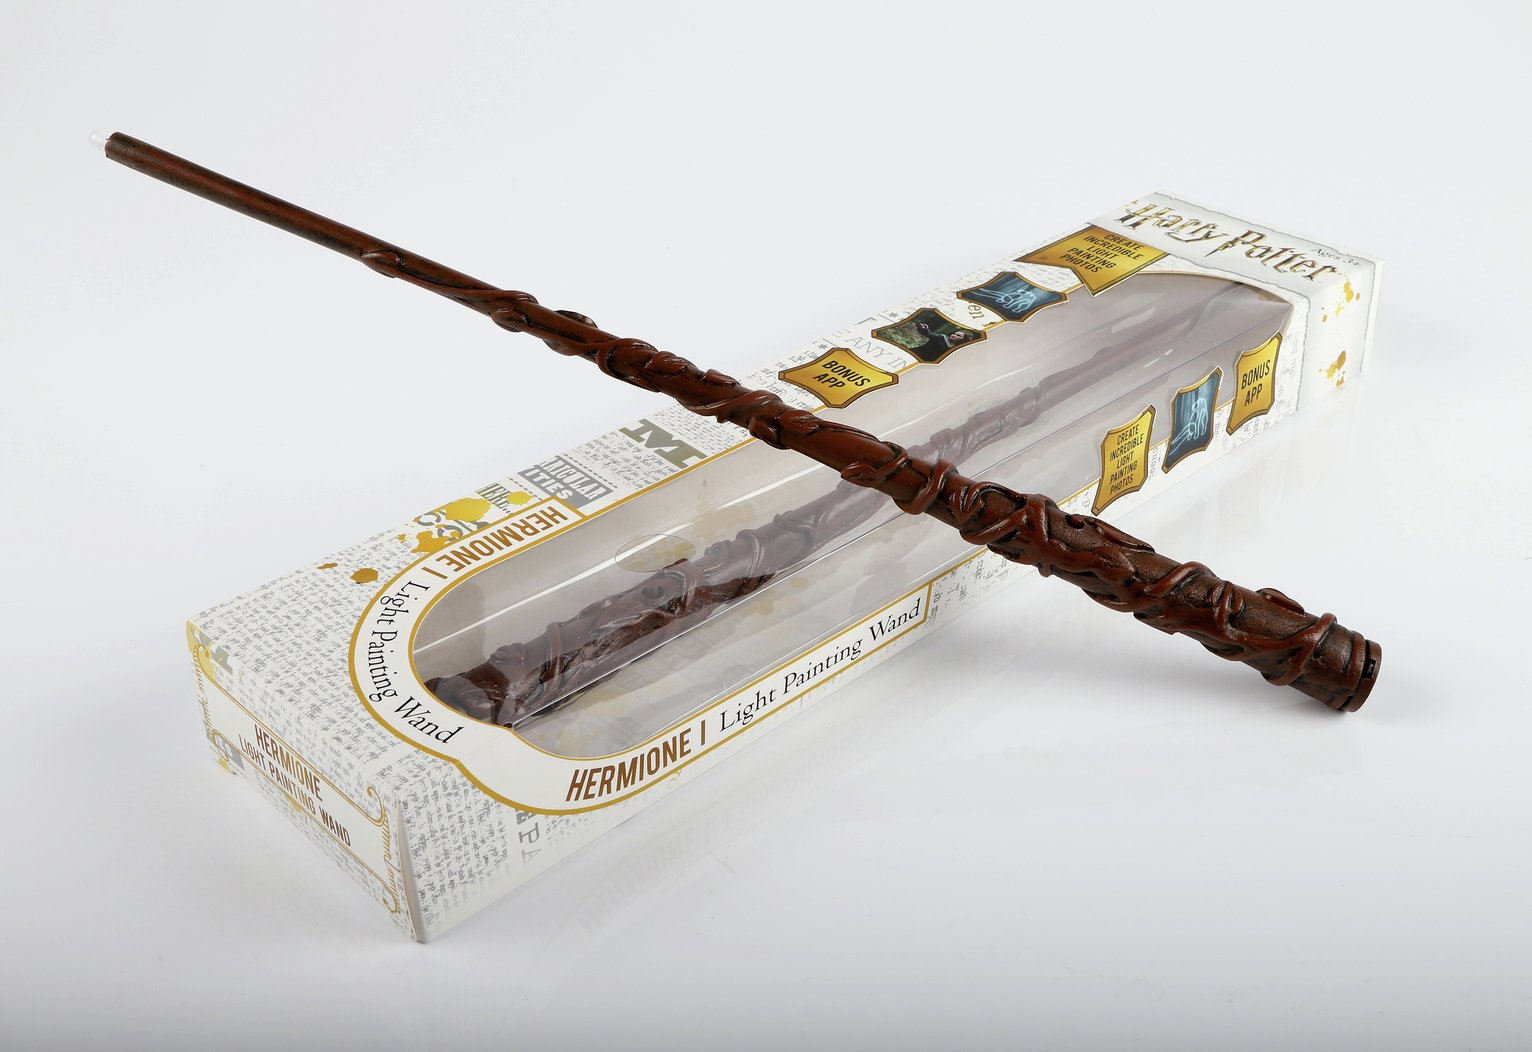 Harry Potter Light Painting Wand - Hermione